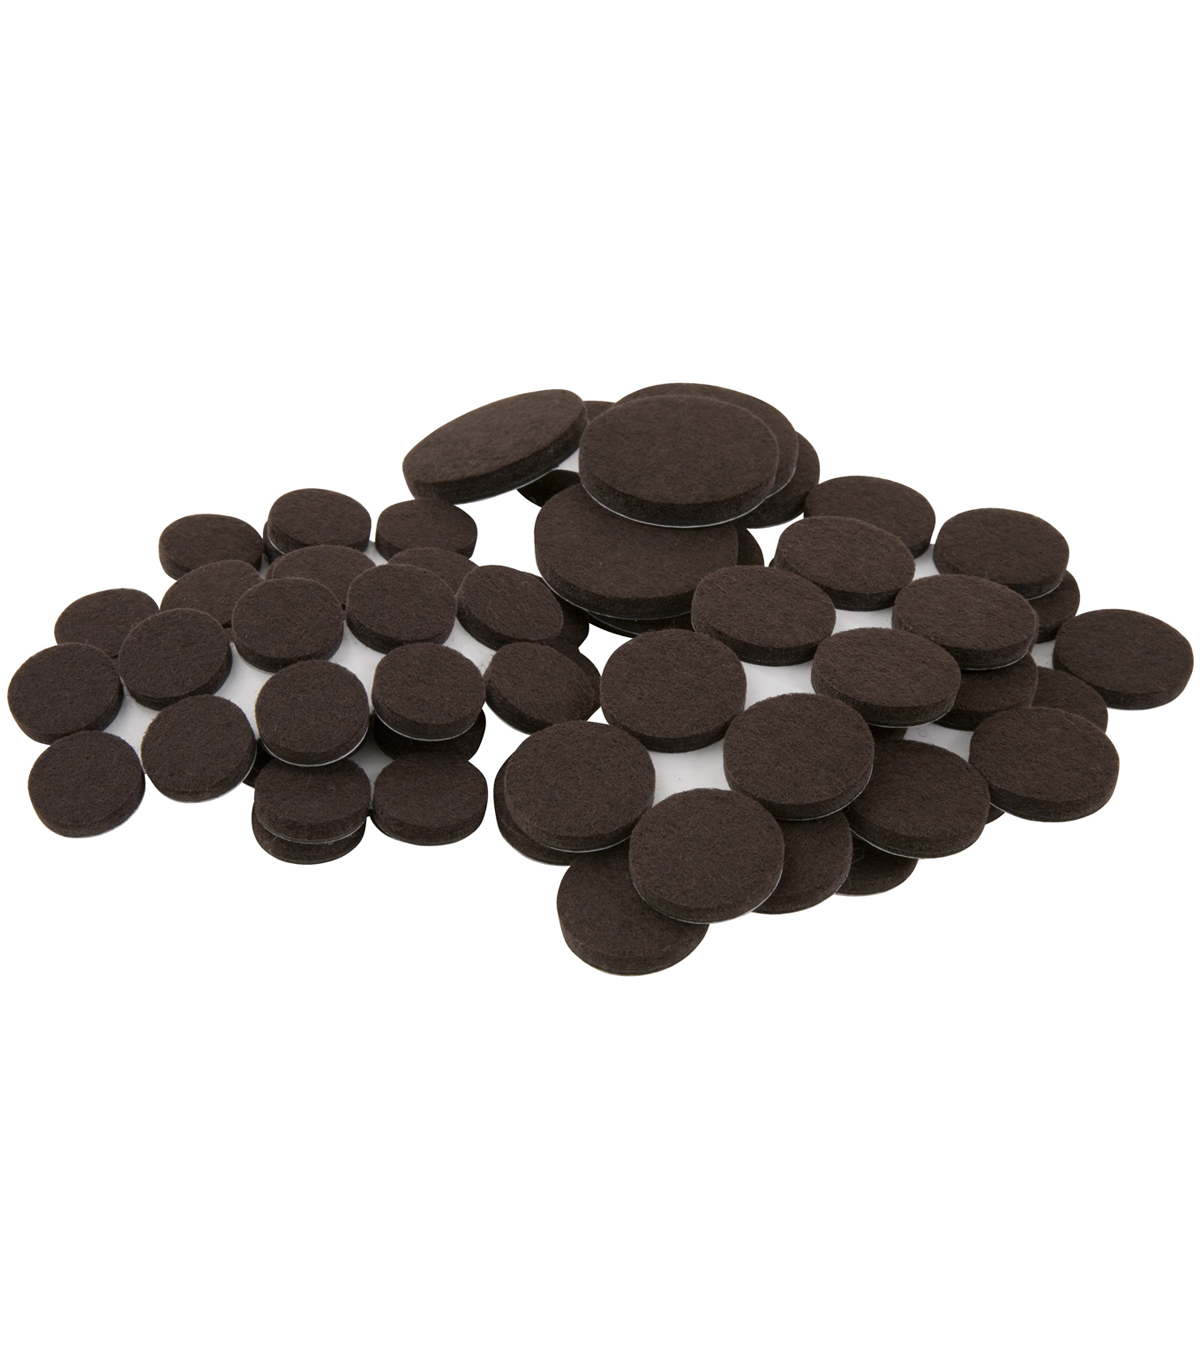 SoftTouch 80 pk Self-Stick Table & Chair Round Felt Pads-Brown